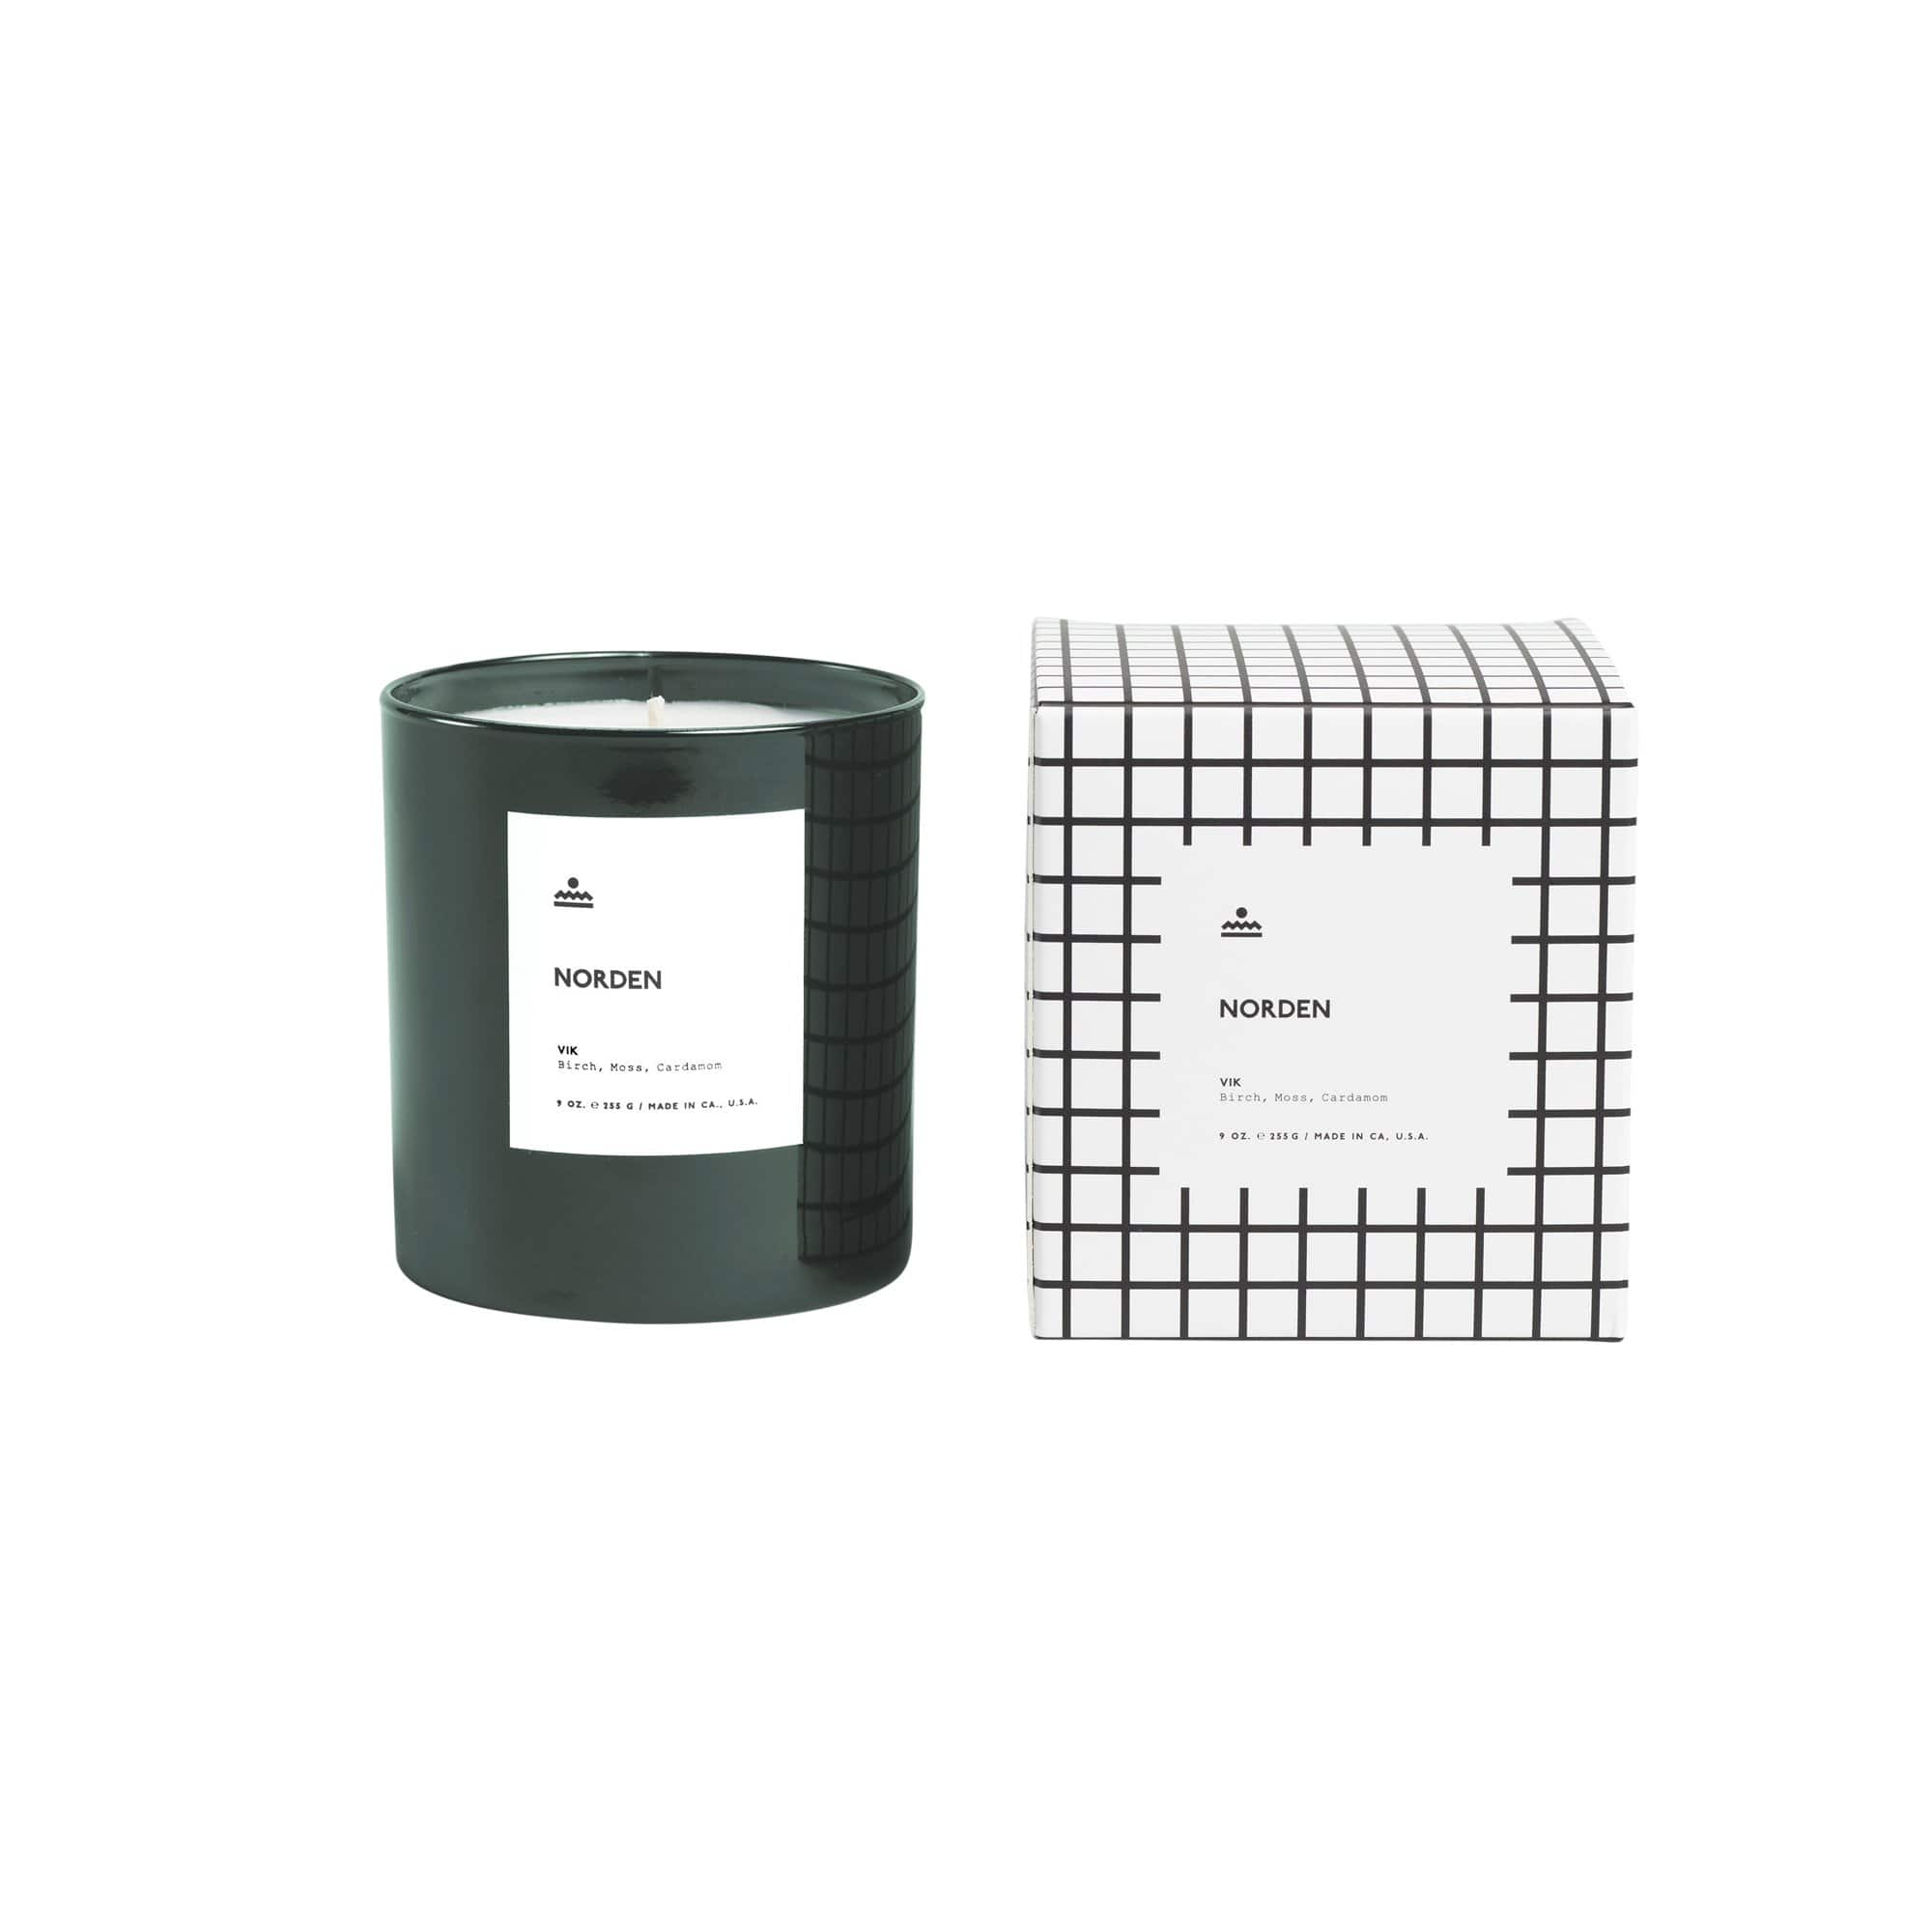 Norden Goods Candles, Diffusers + Incense Vik 9 oz. Glass Candle